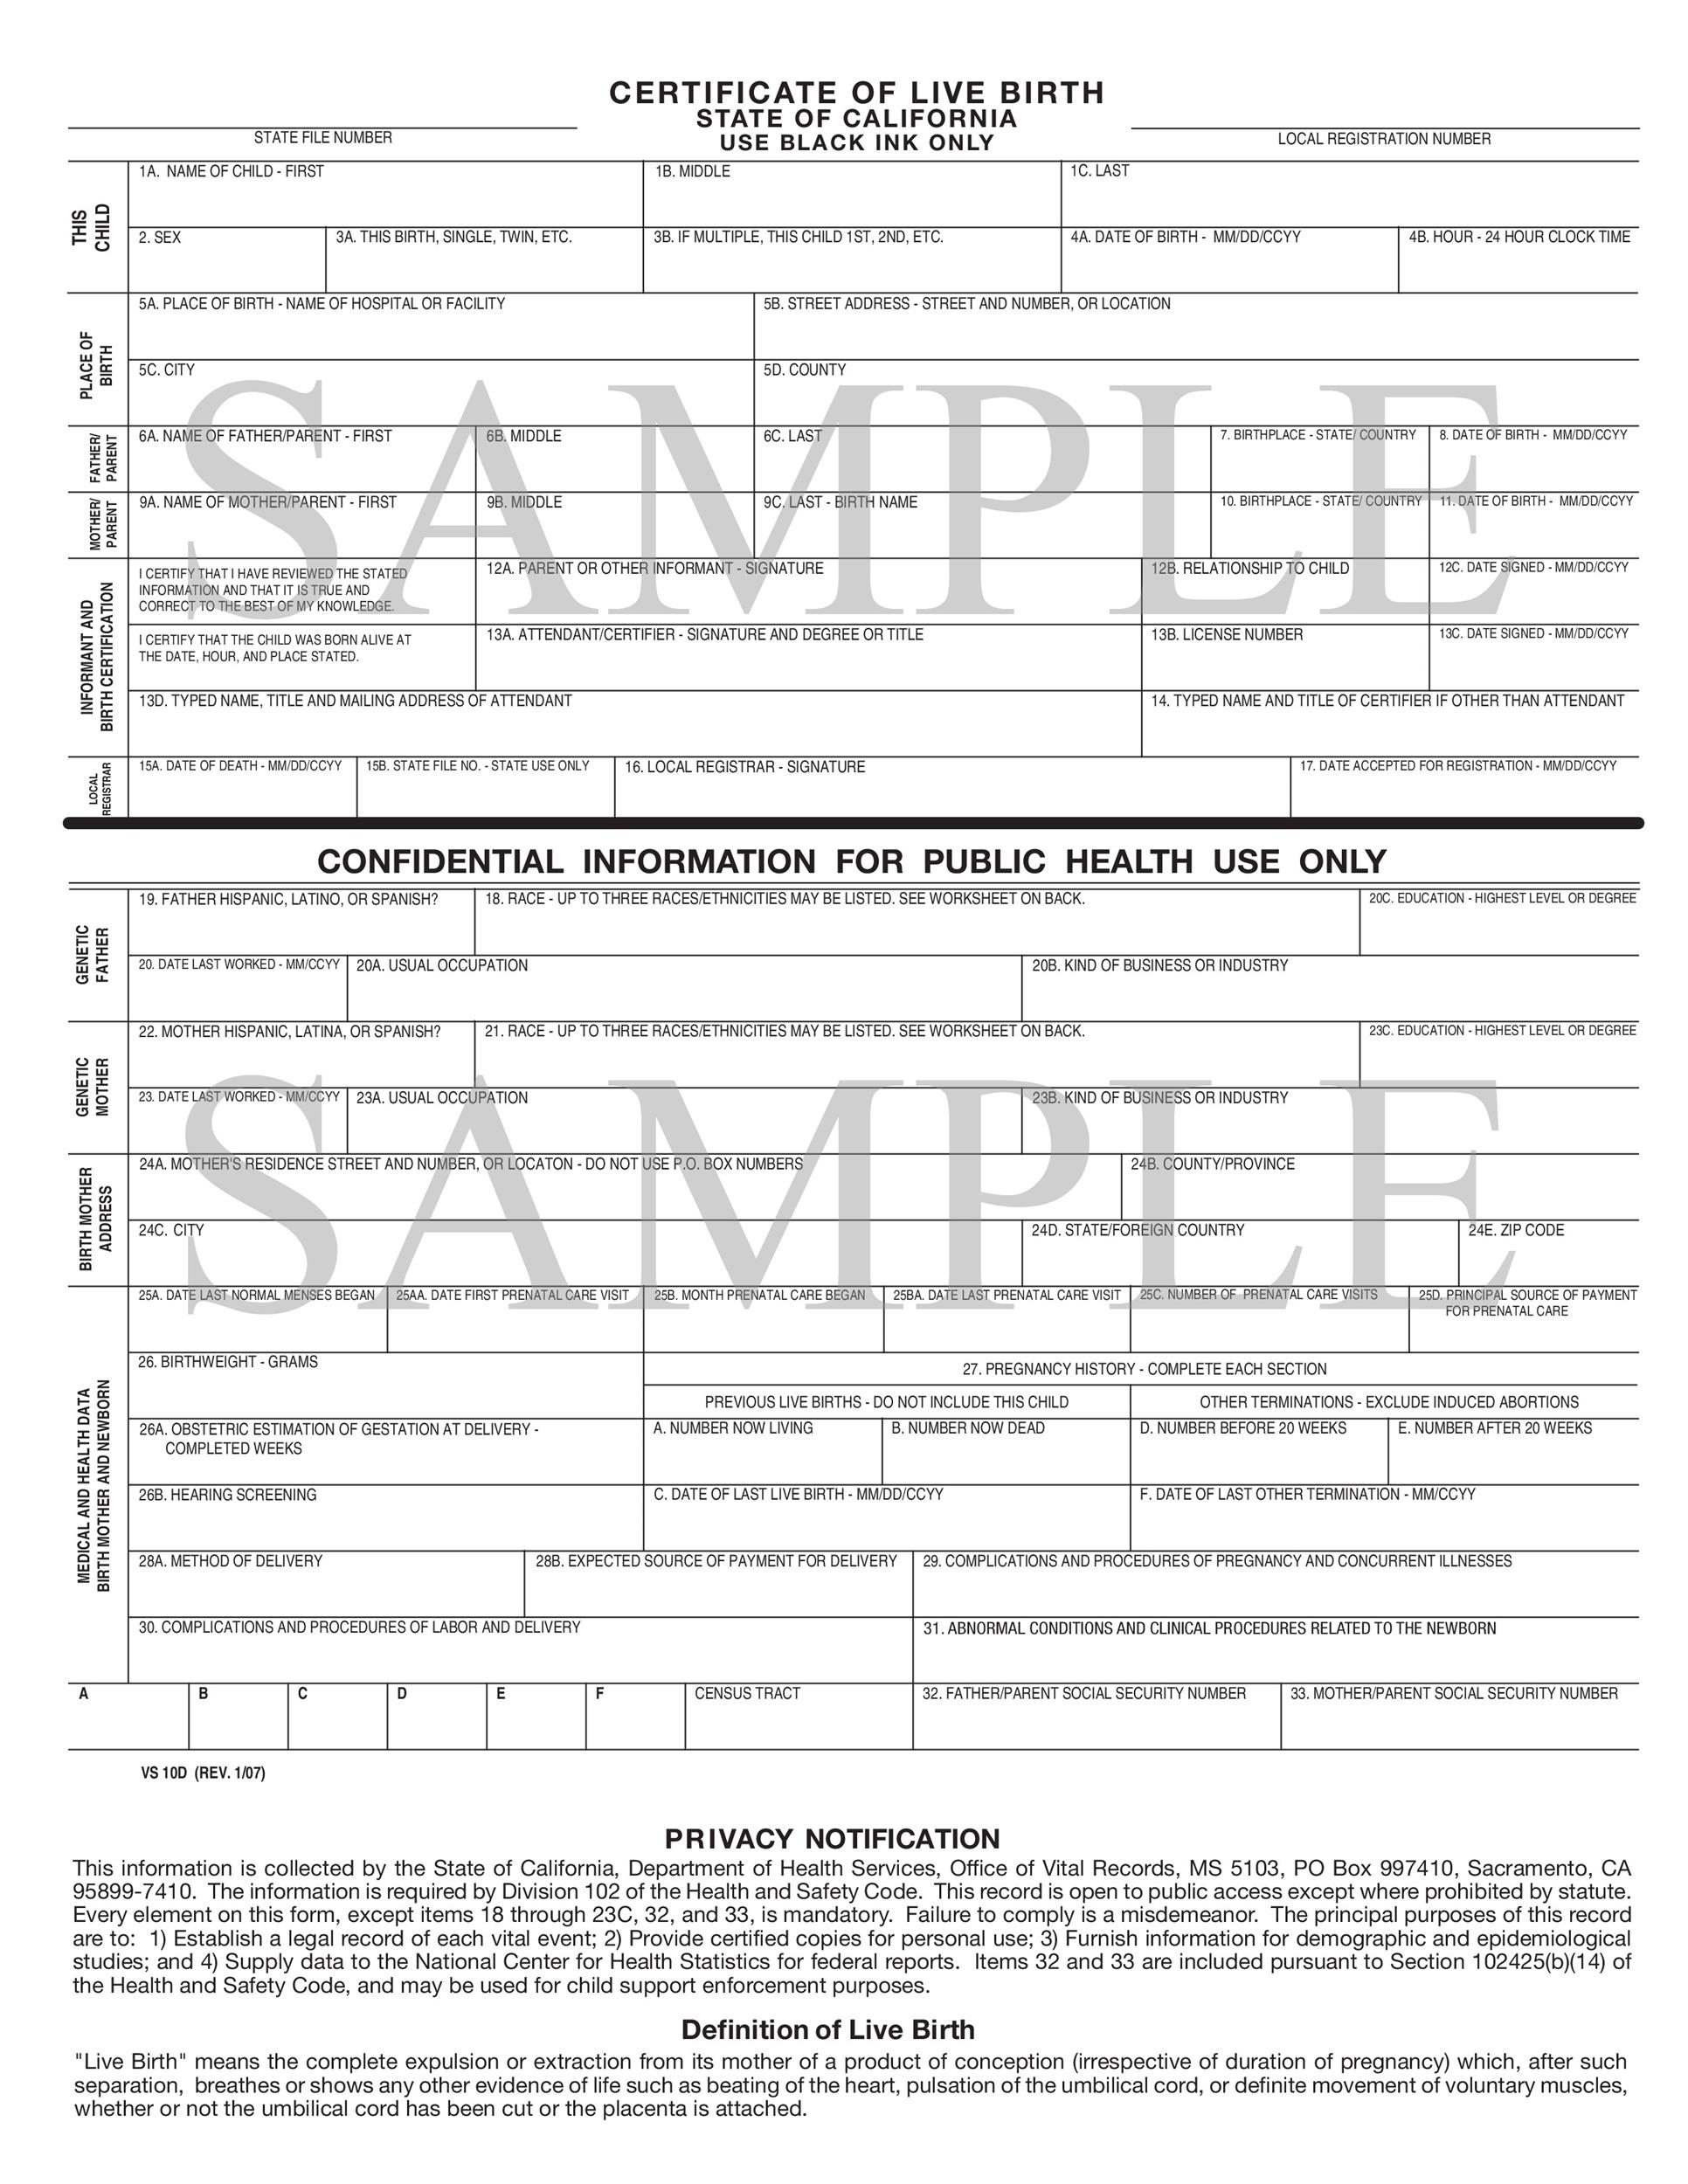 15 Birth Certificate Templates (Word & PDF) ᐅ Template Lab